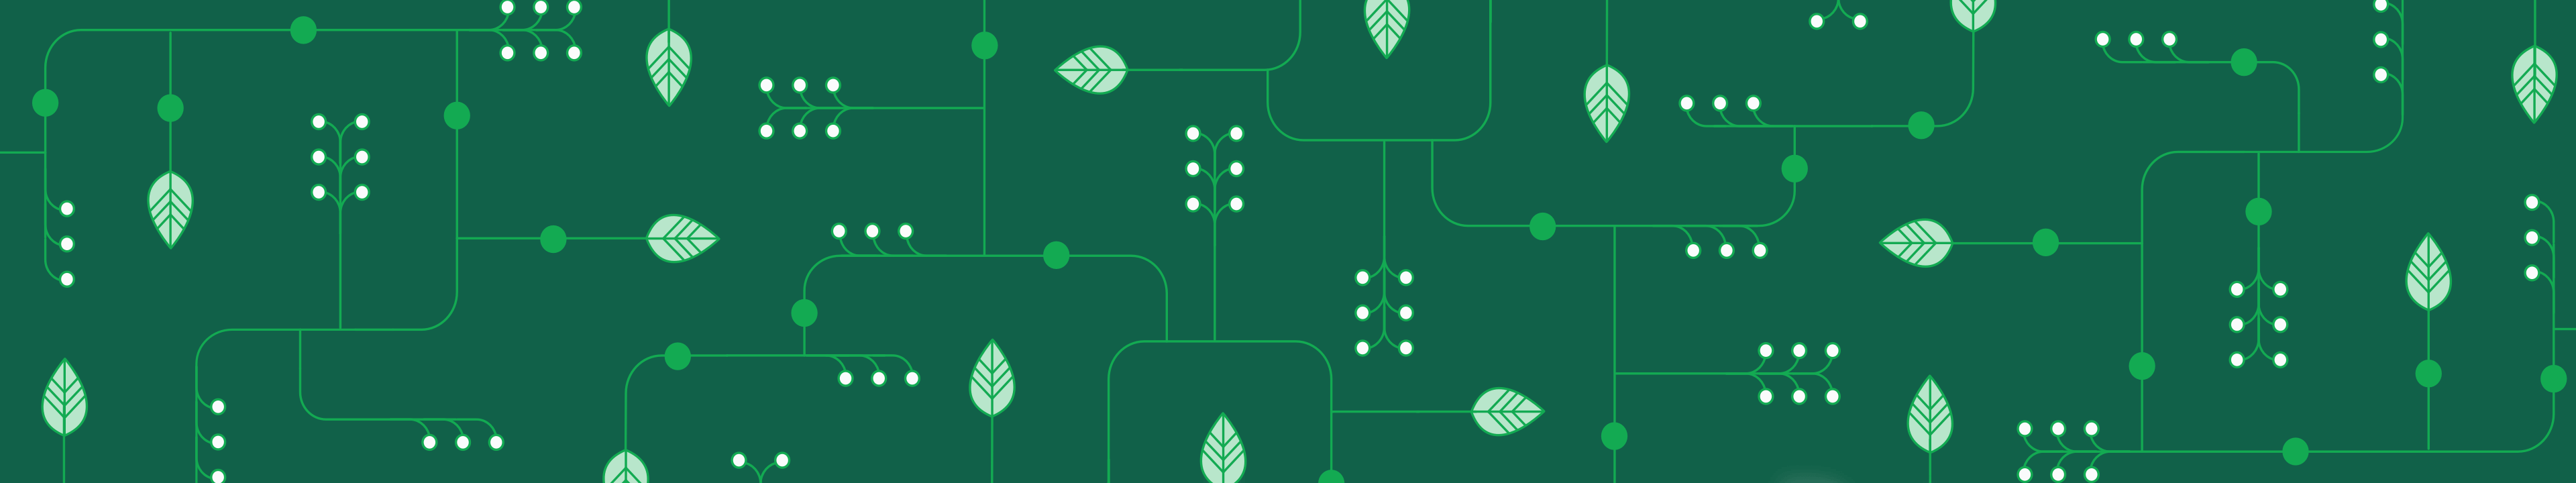 Running MongoDB Ops Manager in Kubernetes